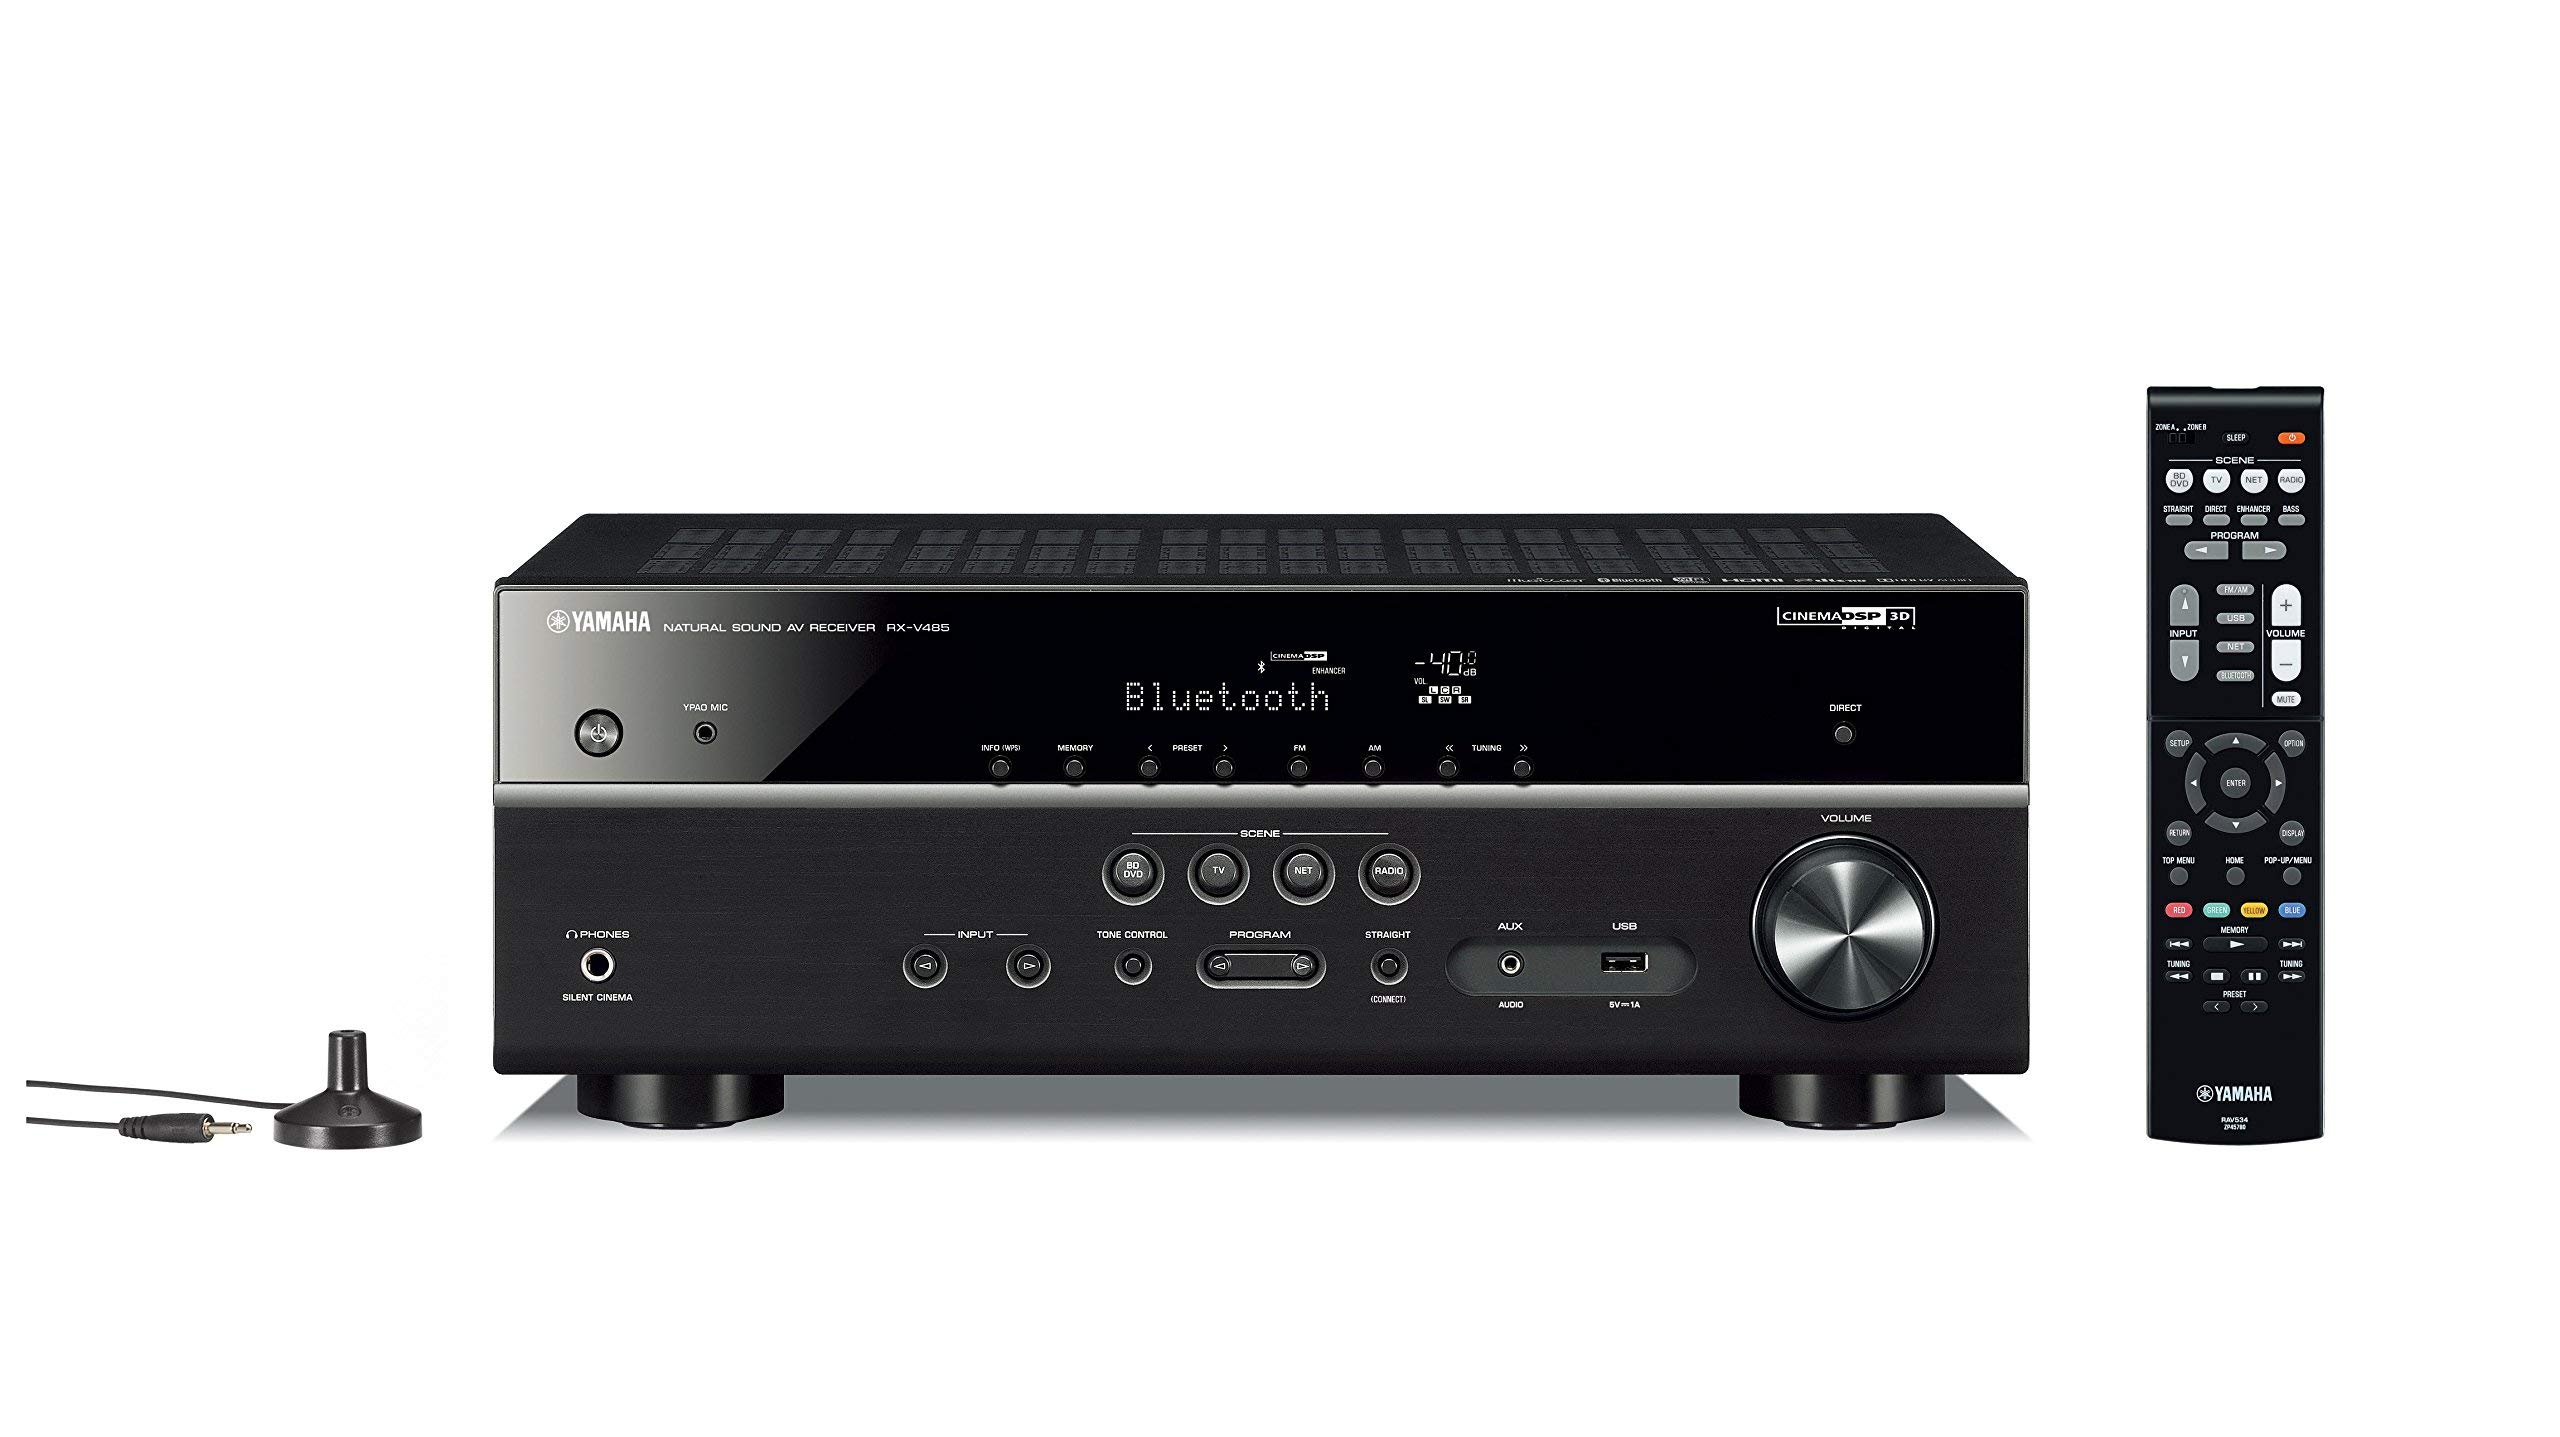 Yamaha RX-V485BL 5.1-Channel 4K Ultra HD AV Receiver with MusicCast - Black (Renewed) by Yamaha